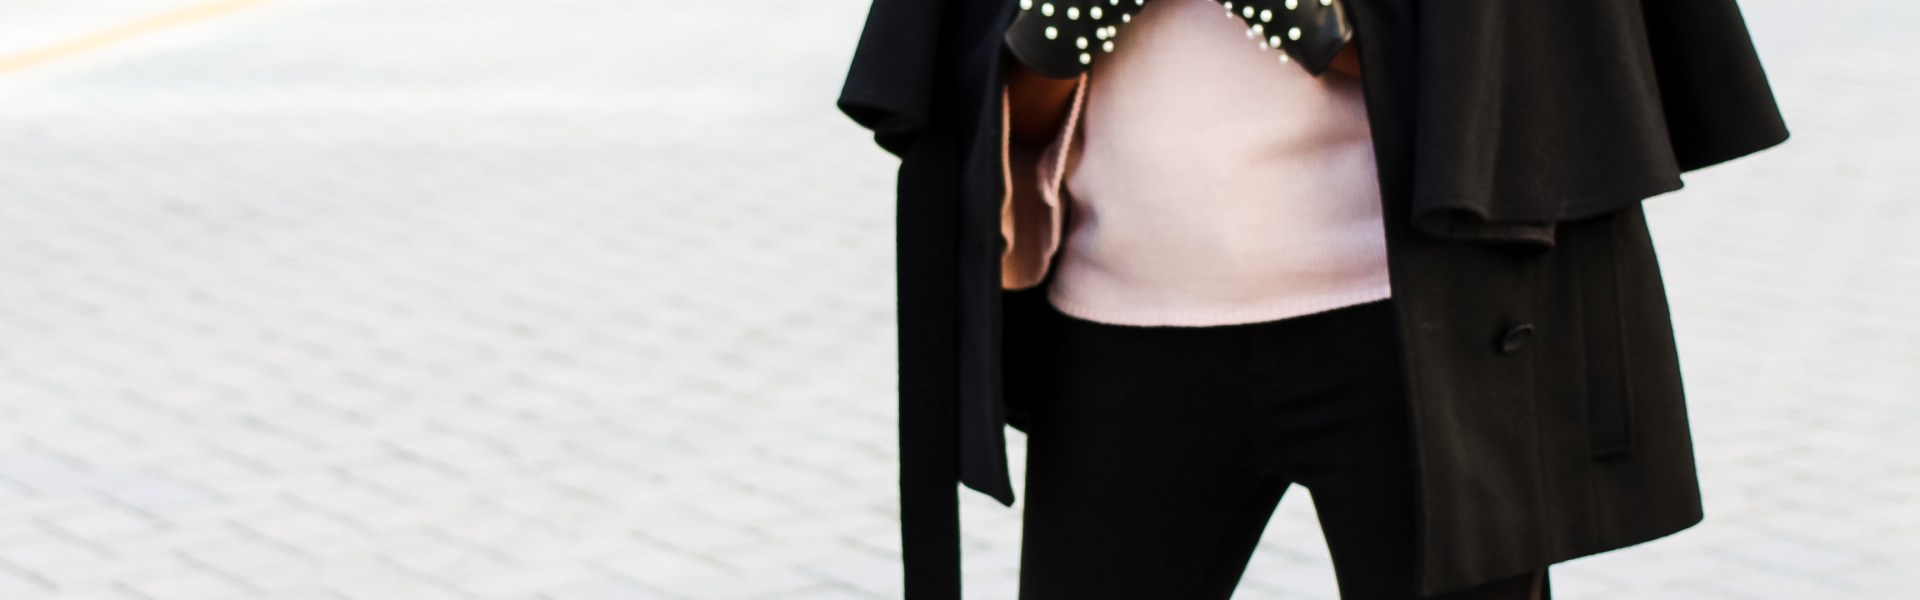 Postmark, zara, floral ankle booties, pearl leather gloves, maternity fashion, pregnancy fashion, maternity style, bump style, shein, pink ruffle sleeve sweater, zara pearl leather gloves, dallas blogger, black fashion blogger